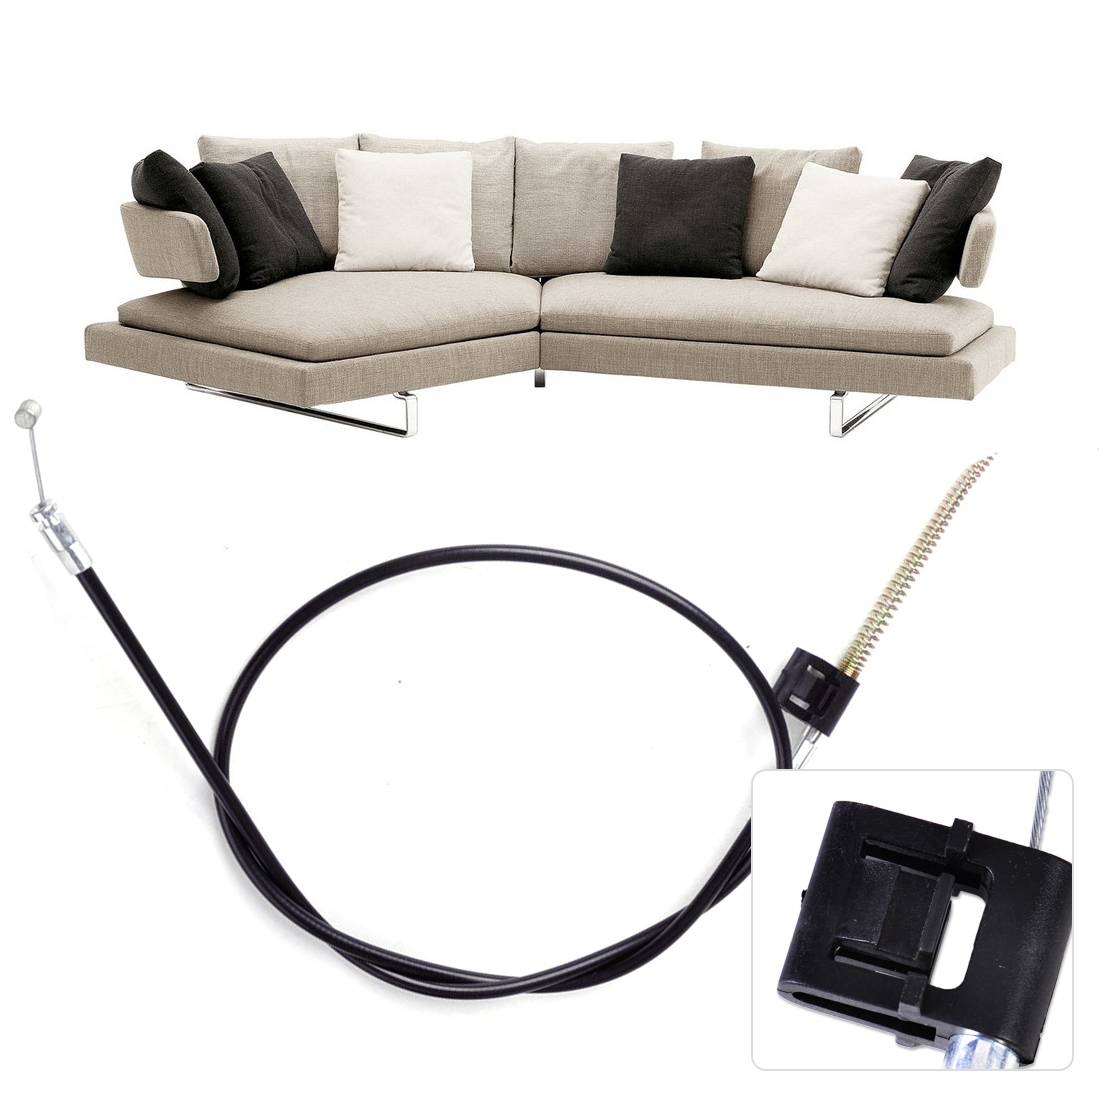 Metal Recliner Chair Sofa Handle Cable Couch Release Lever Replacement Cable 2 pcs set durable metal handle recliner chair sofa couch release lever replacement pull handle part black suite recliner